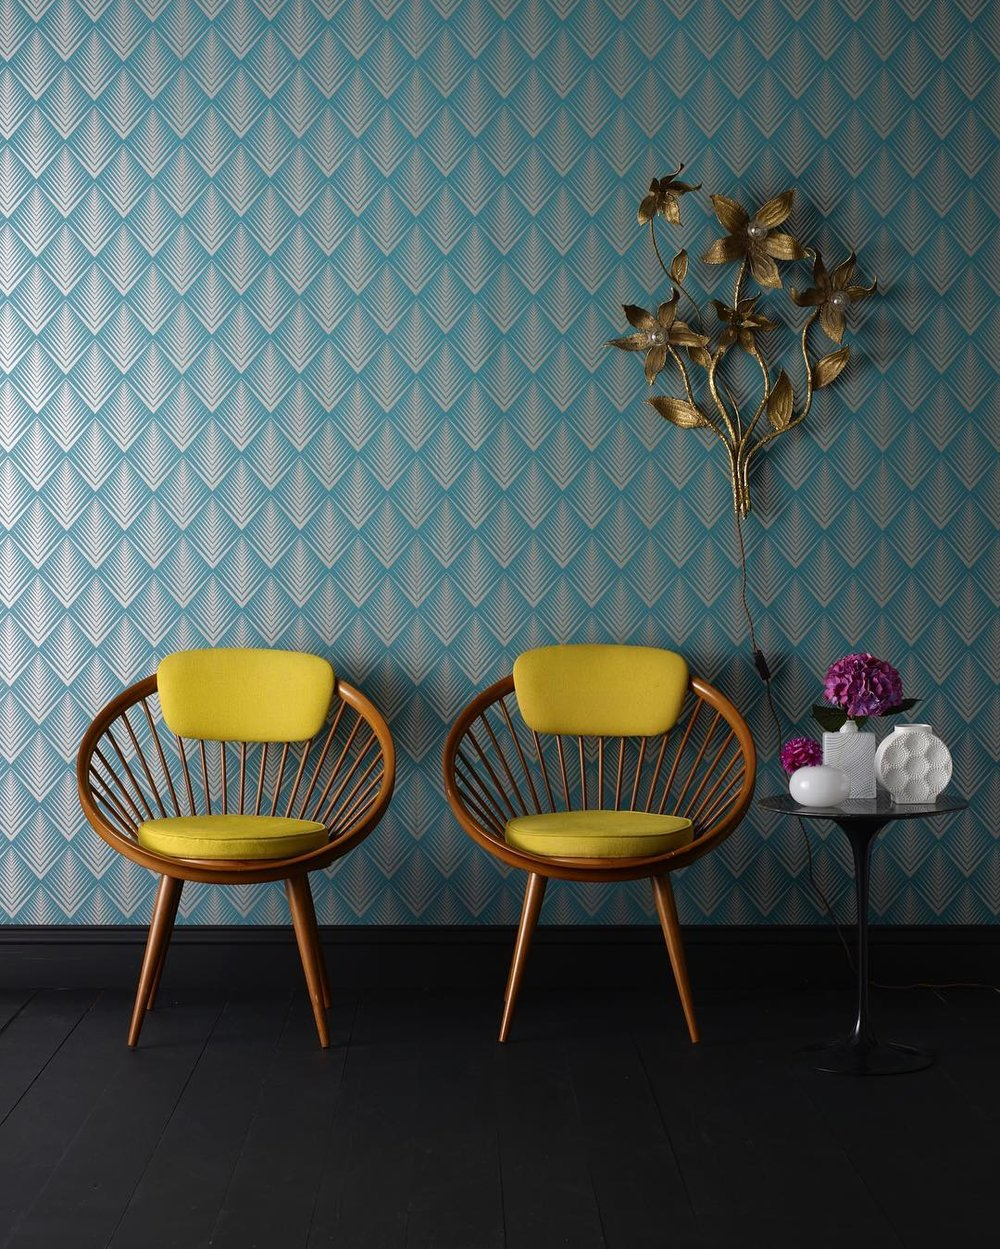 Two mini Papasans with cushions—an updated take on a classic mid-century design